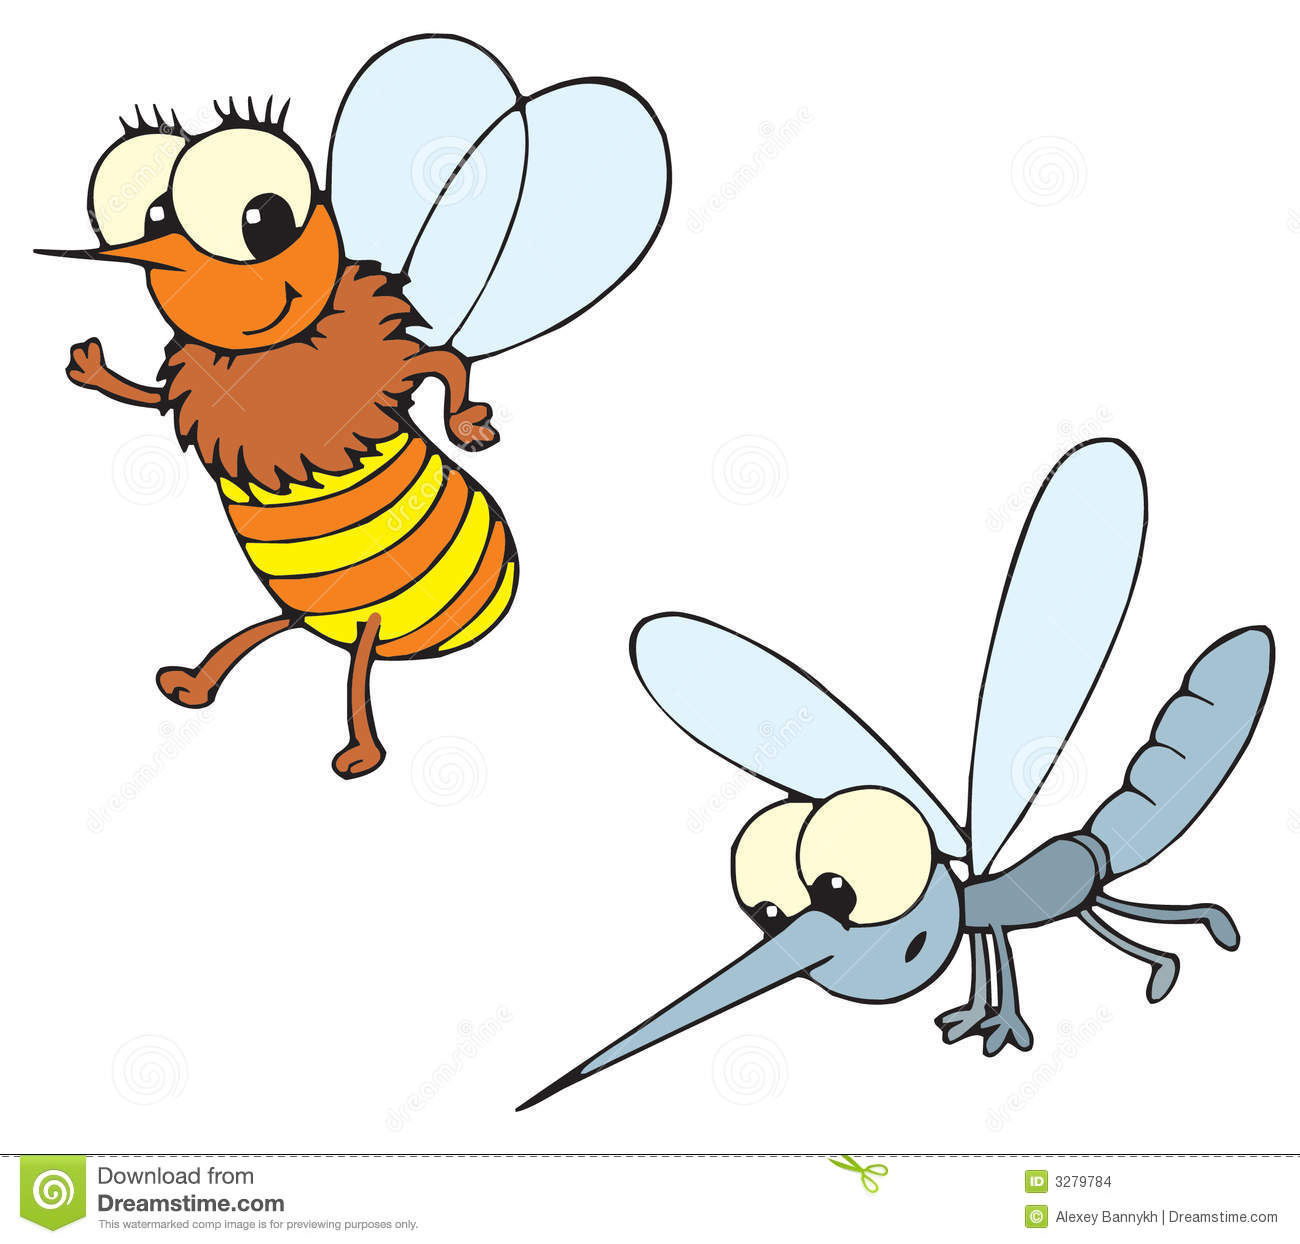 Mosquito Clip Art Images | Clipart Panda - Free Clipart Images